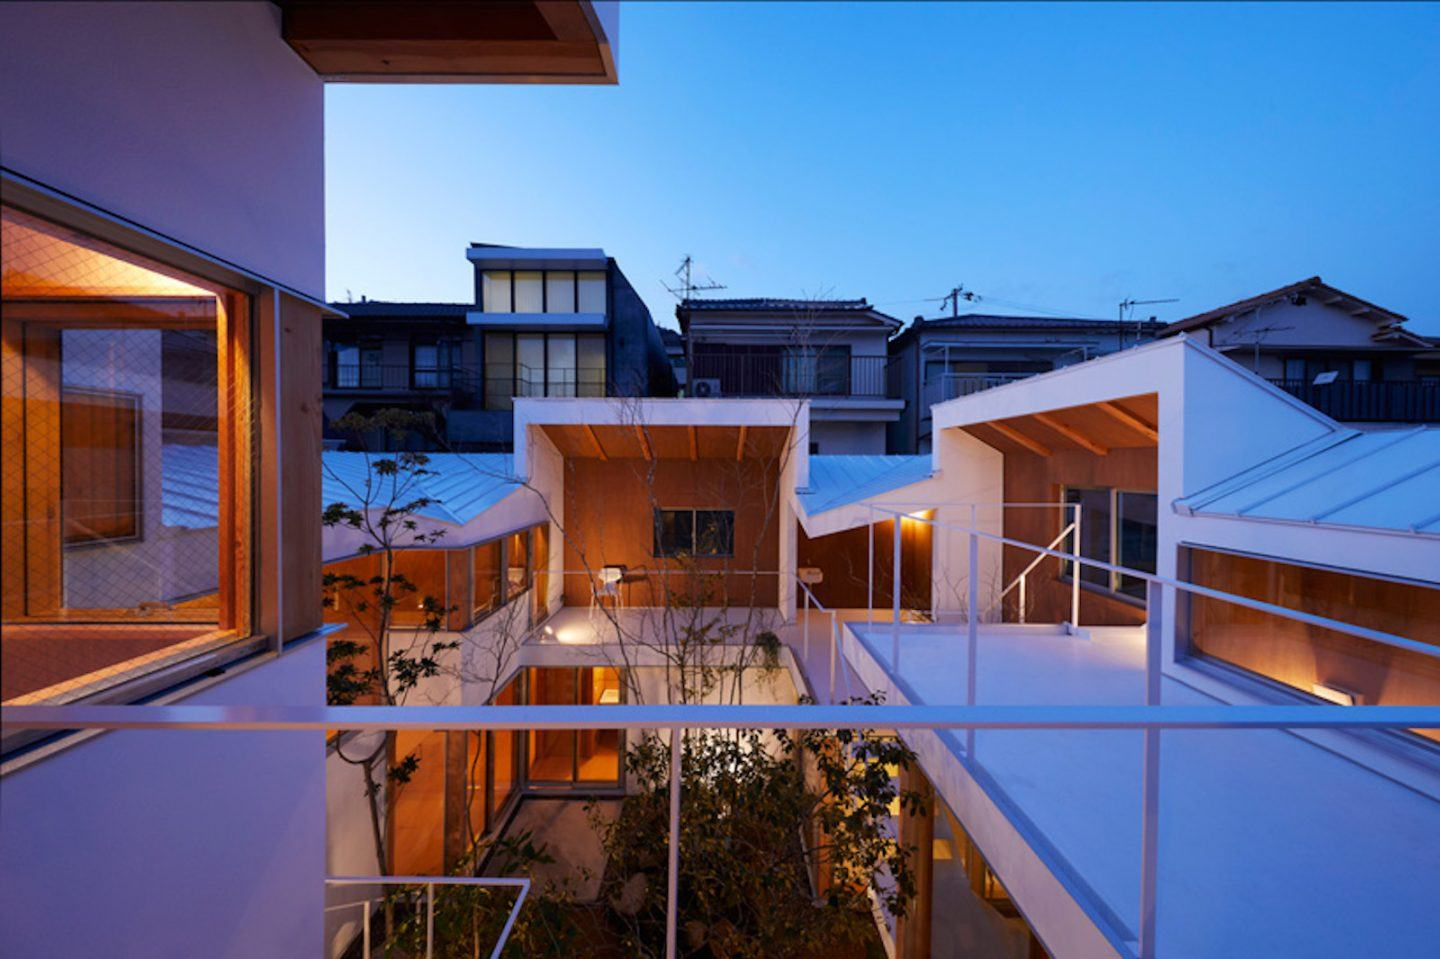 IGNANT-Architecture-Hata-Tomohiro-Loop-Terrace-house-010